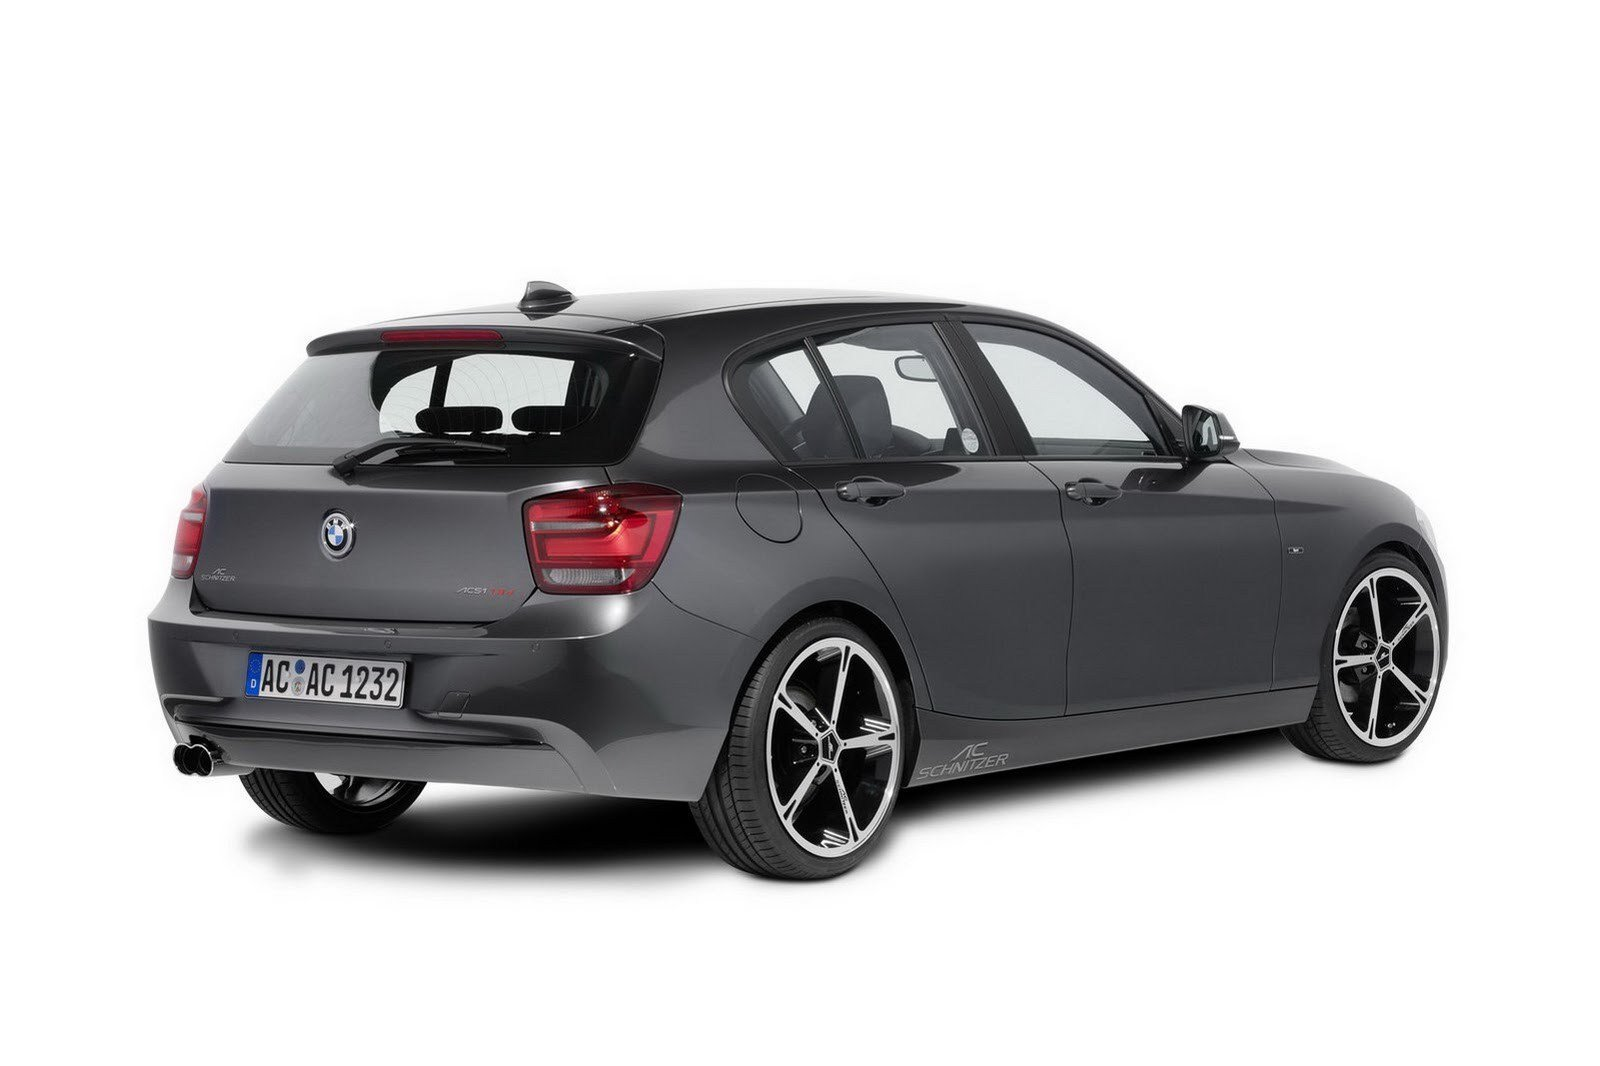 2012 ac schnitzer bmw s rie 1 f20 dark cars wallpapers. Black Bedroom Furniture Sets. Home Design Ideas